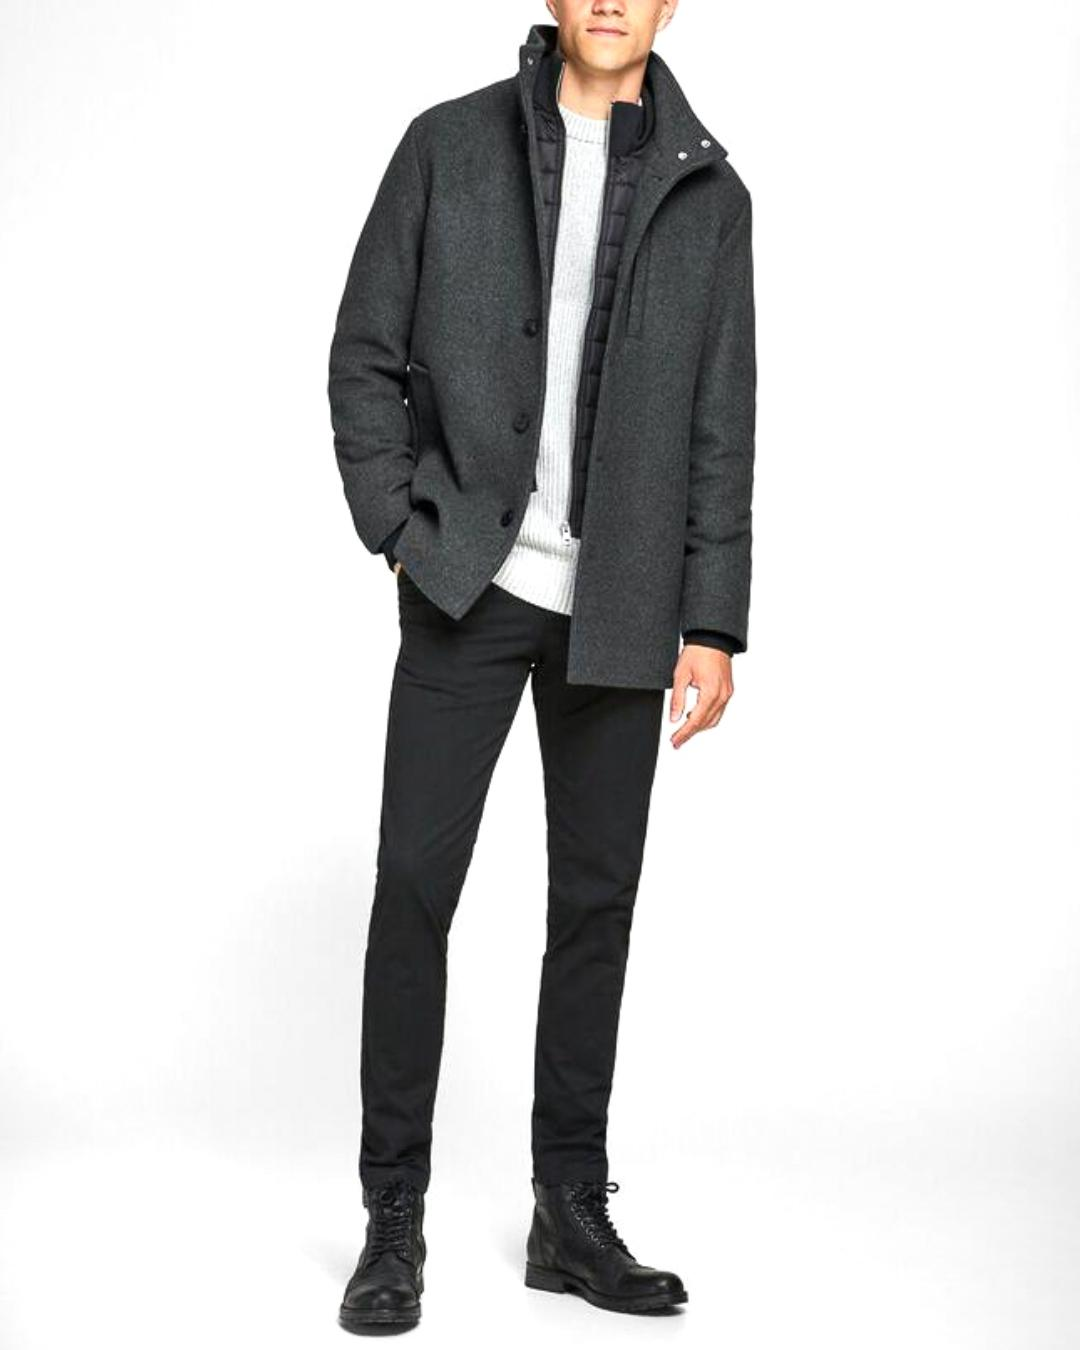 JJDUAL WOOL JACKET DARK-X